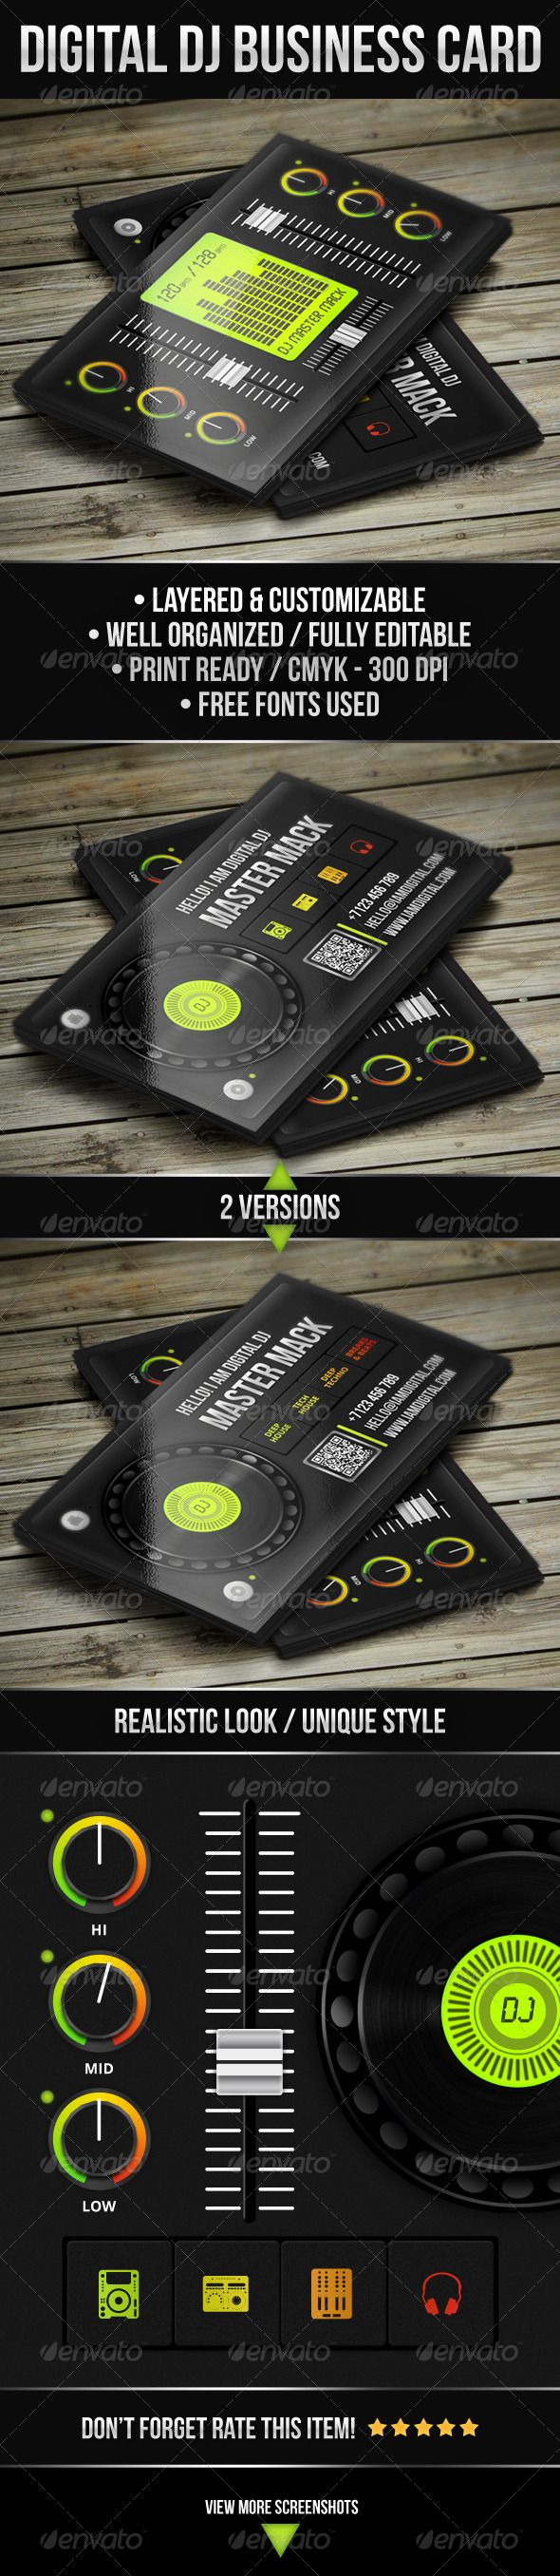 Digital DJ Business Card #djcard #djbusinesscard #businesscard #digital #dj